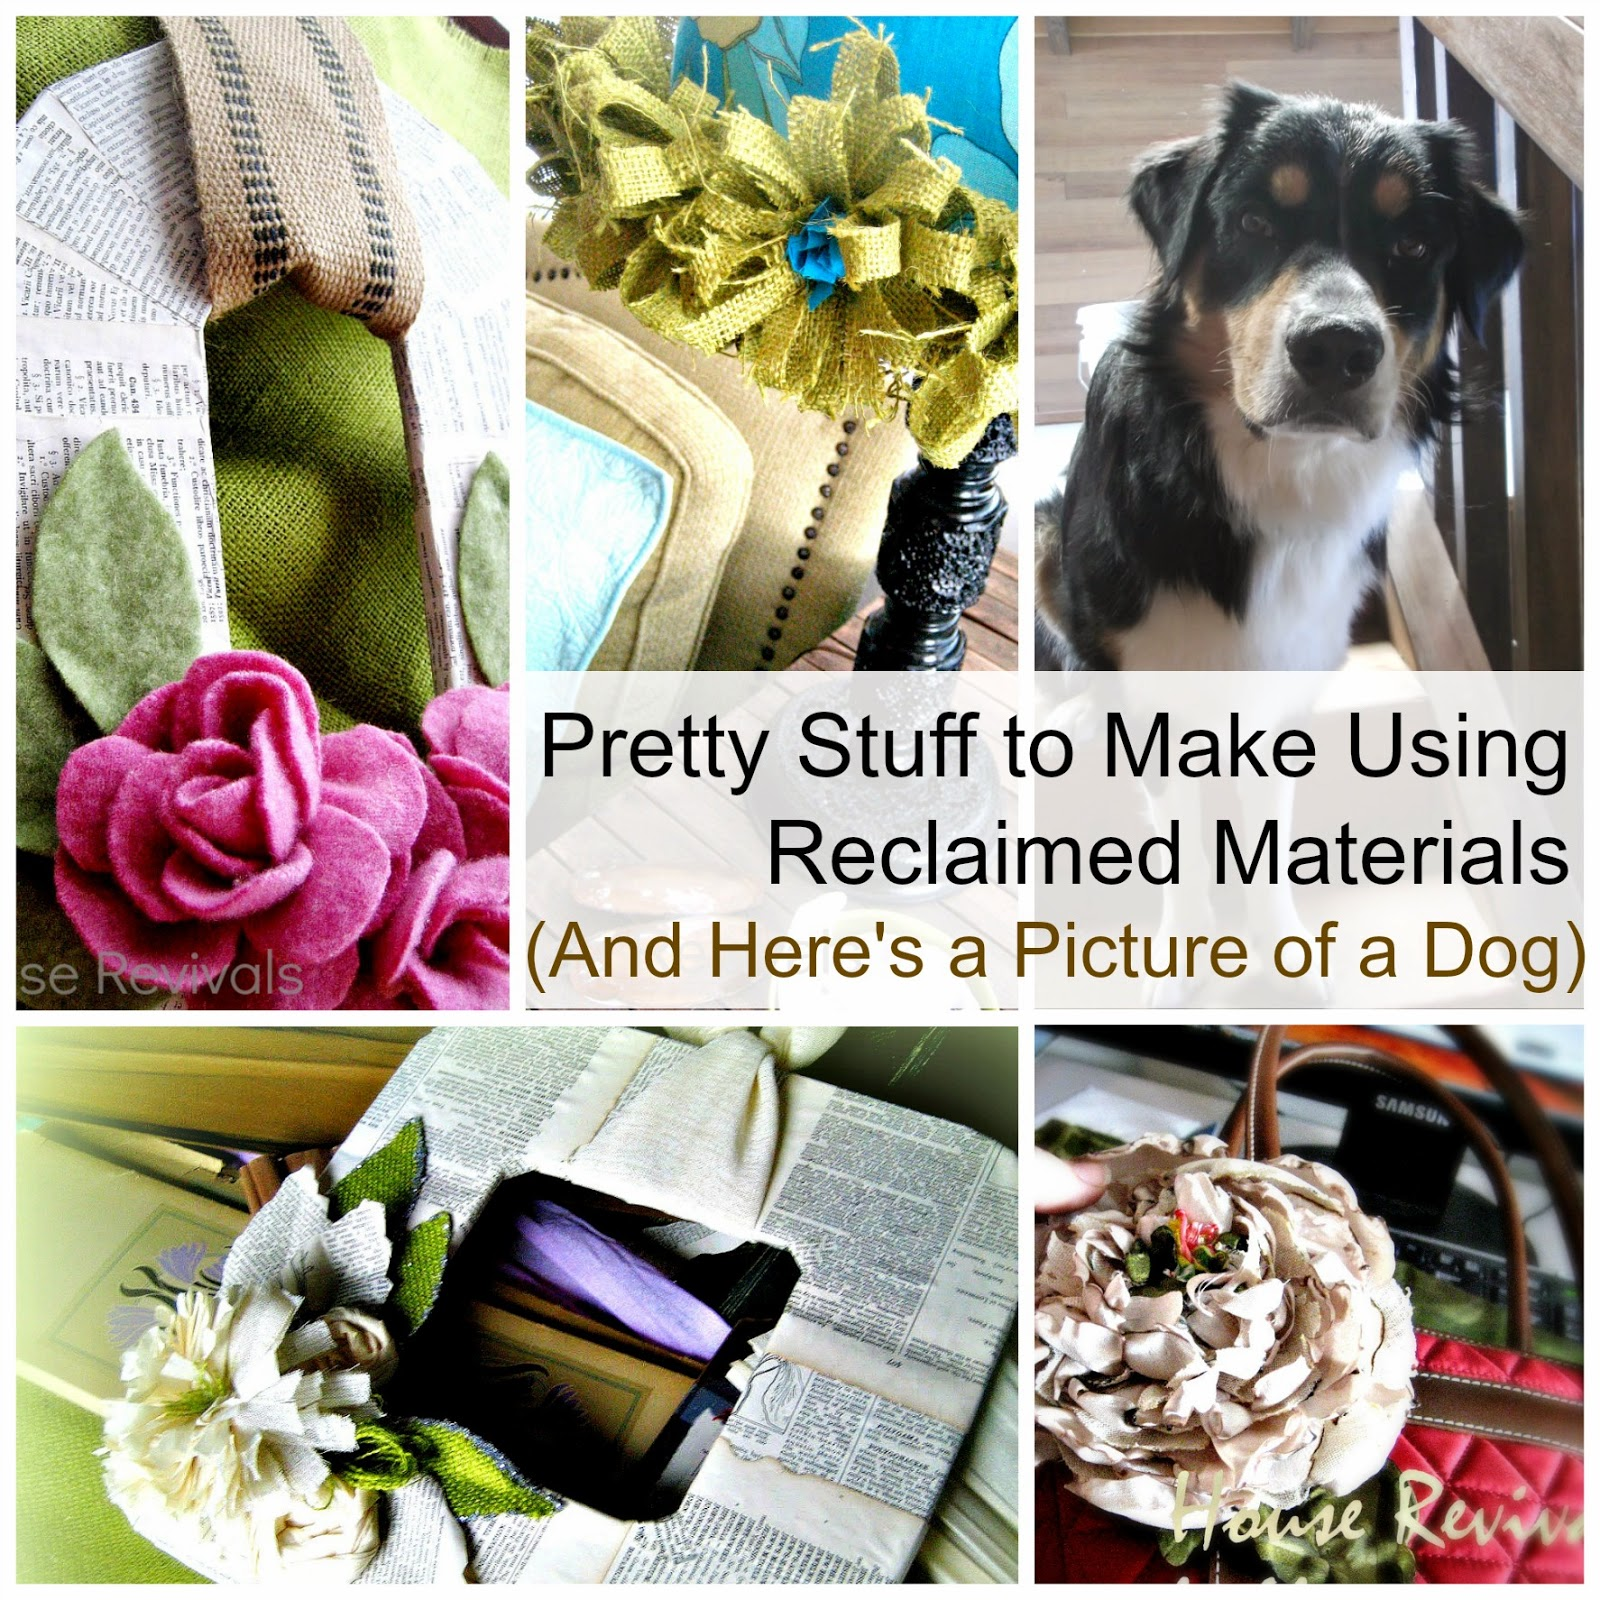 This post is participating in the blogging from a to z for Cool recycled stuff